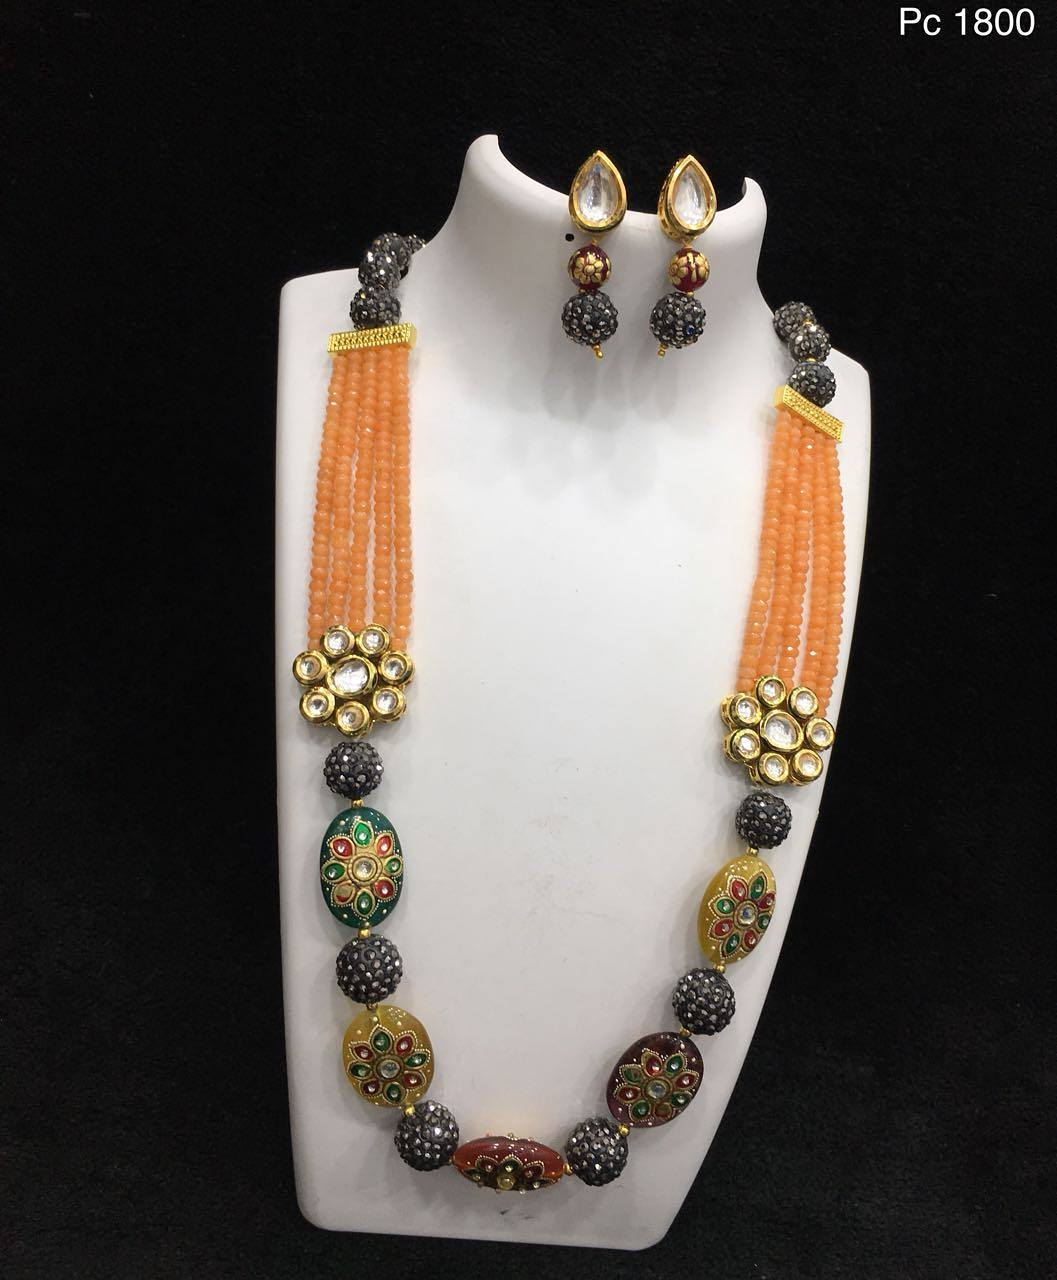 Fashionable Necklace Set From Alamakara